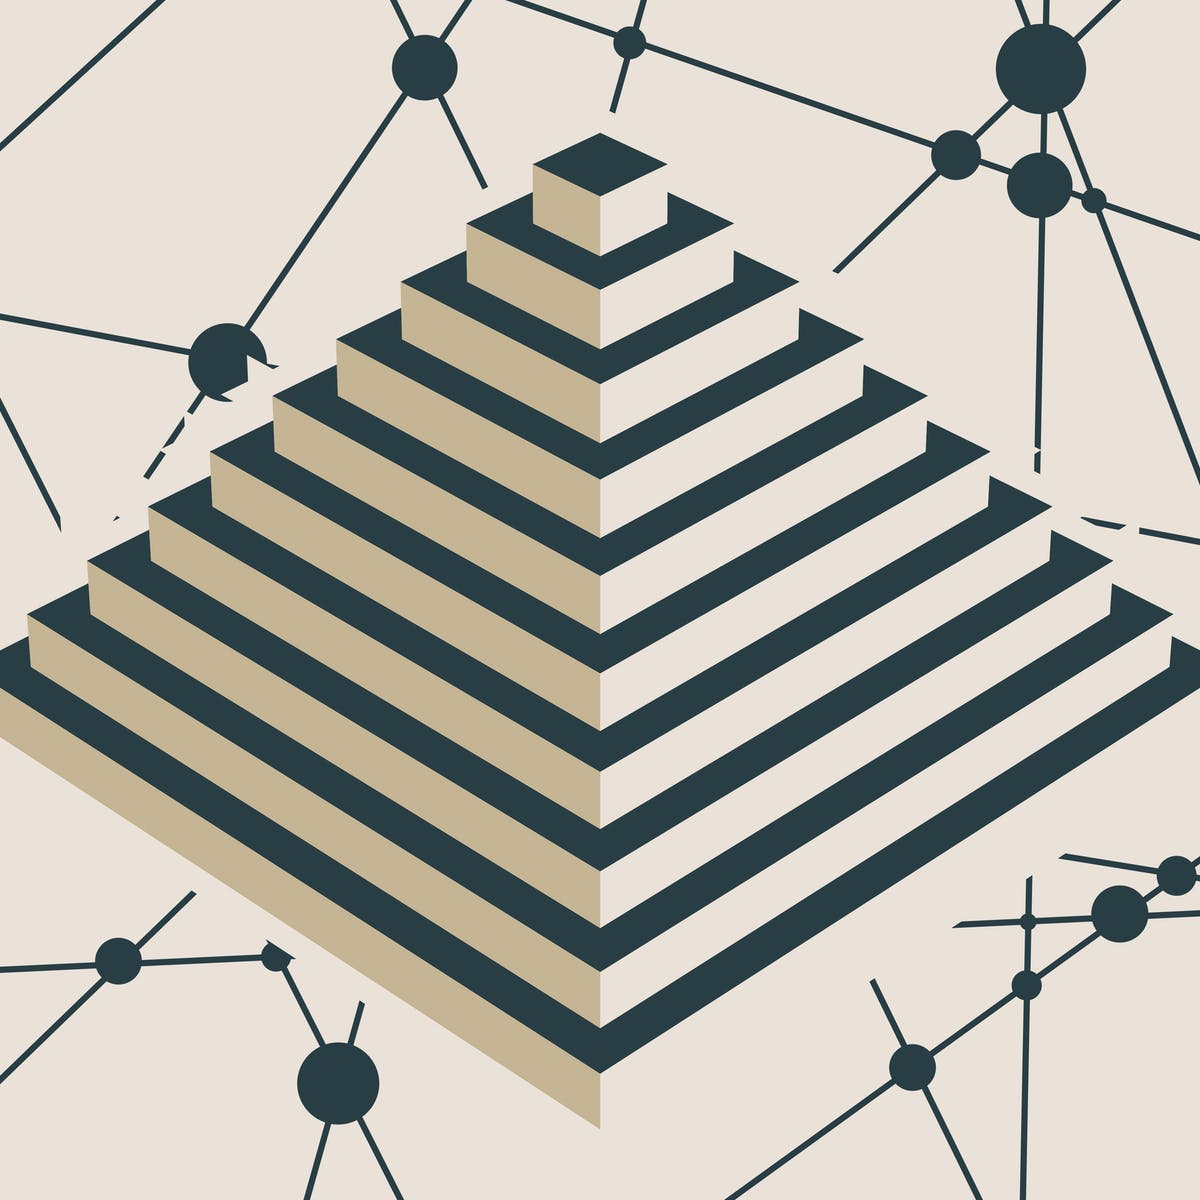 Multi-level marketing has been likened to a legal pyramid